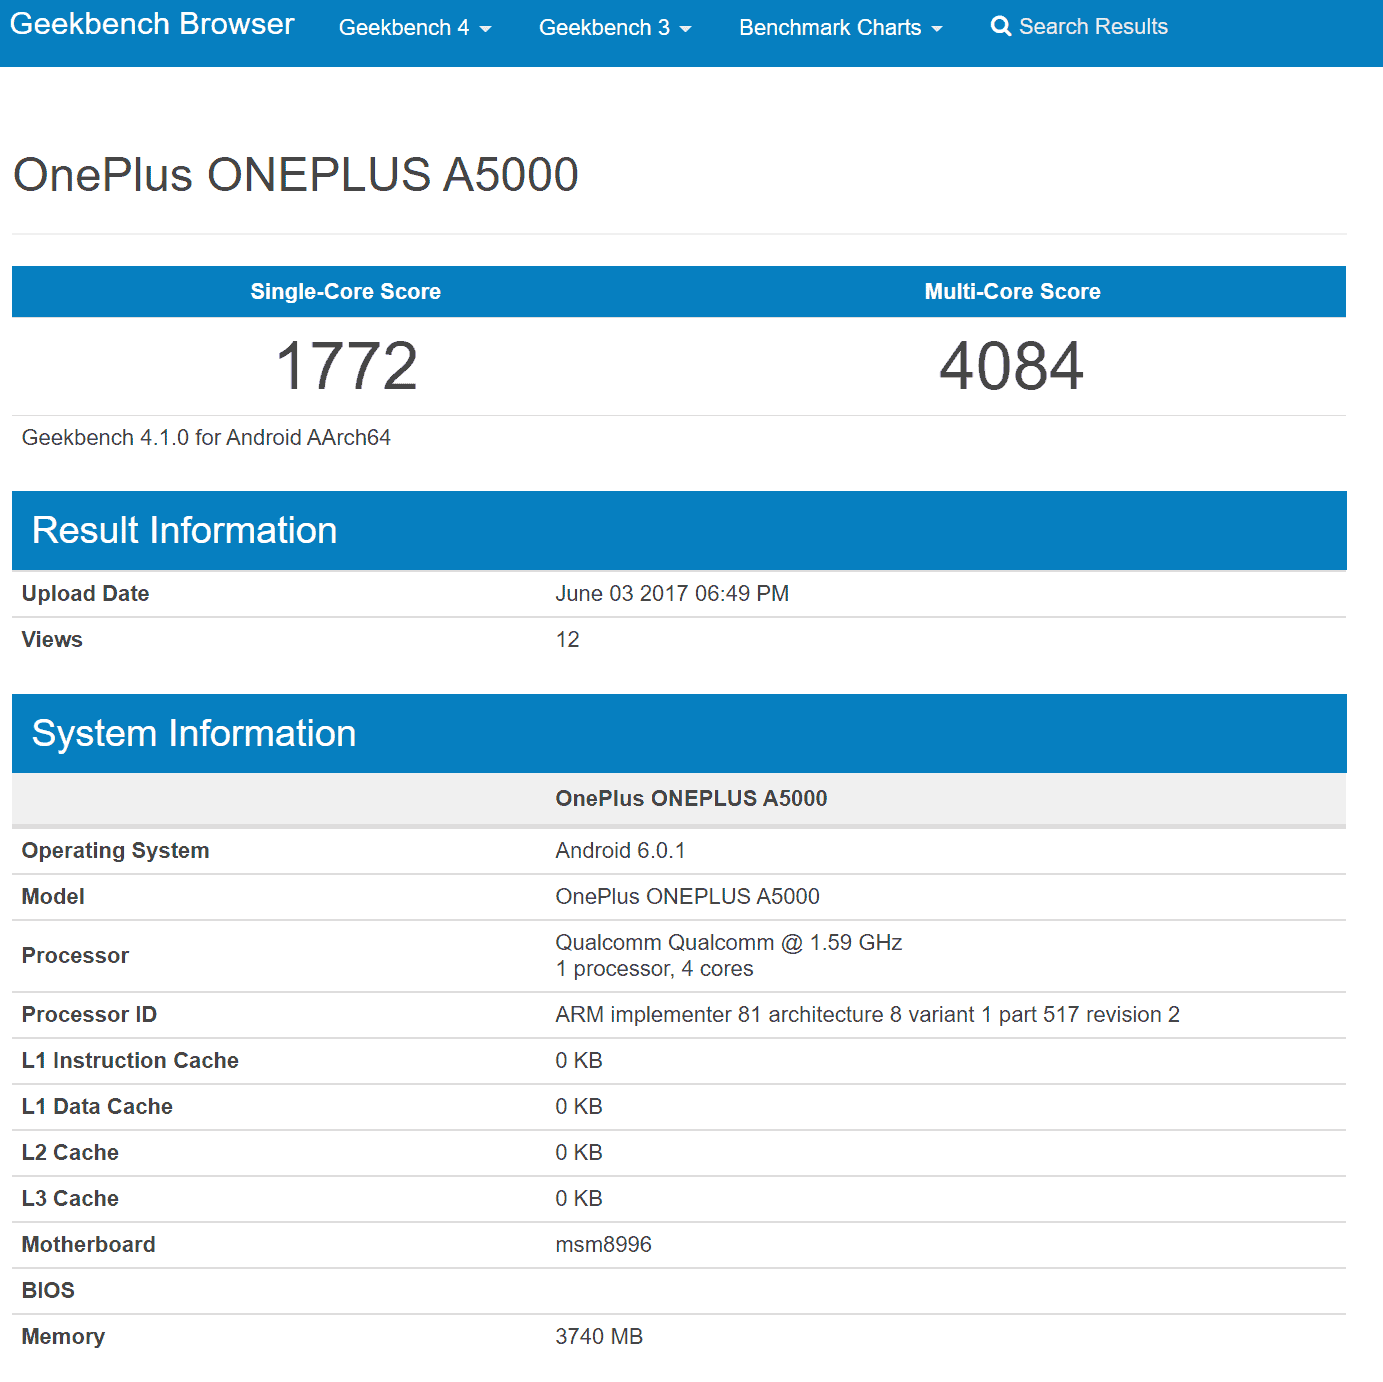 OnePlus A5000 Geekbench Results 4